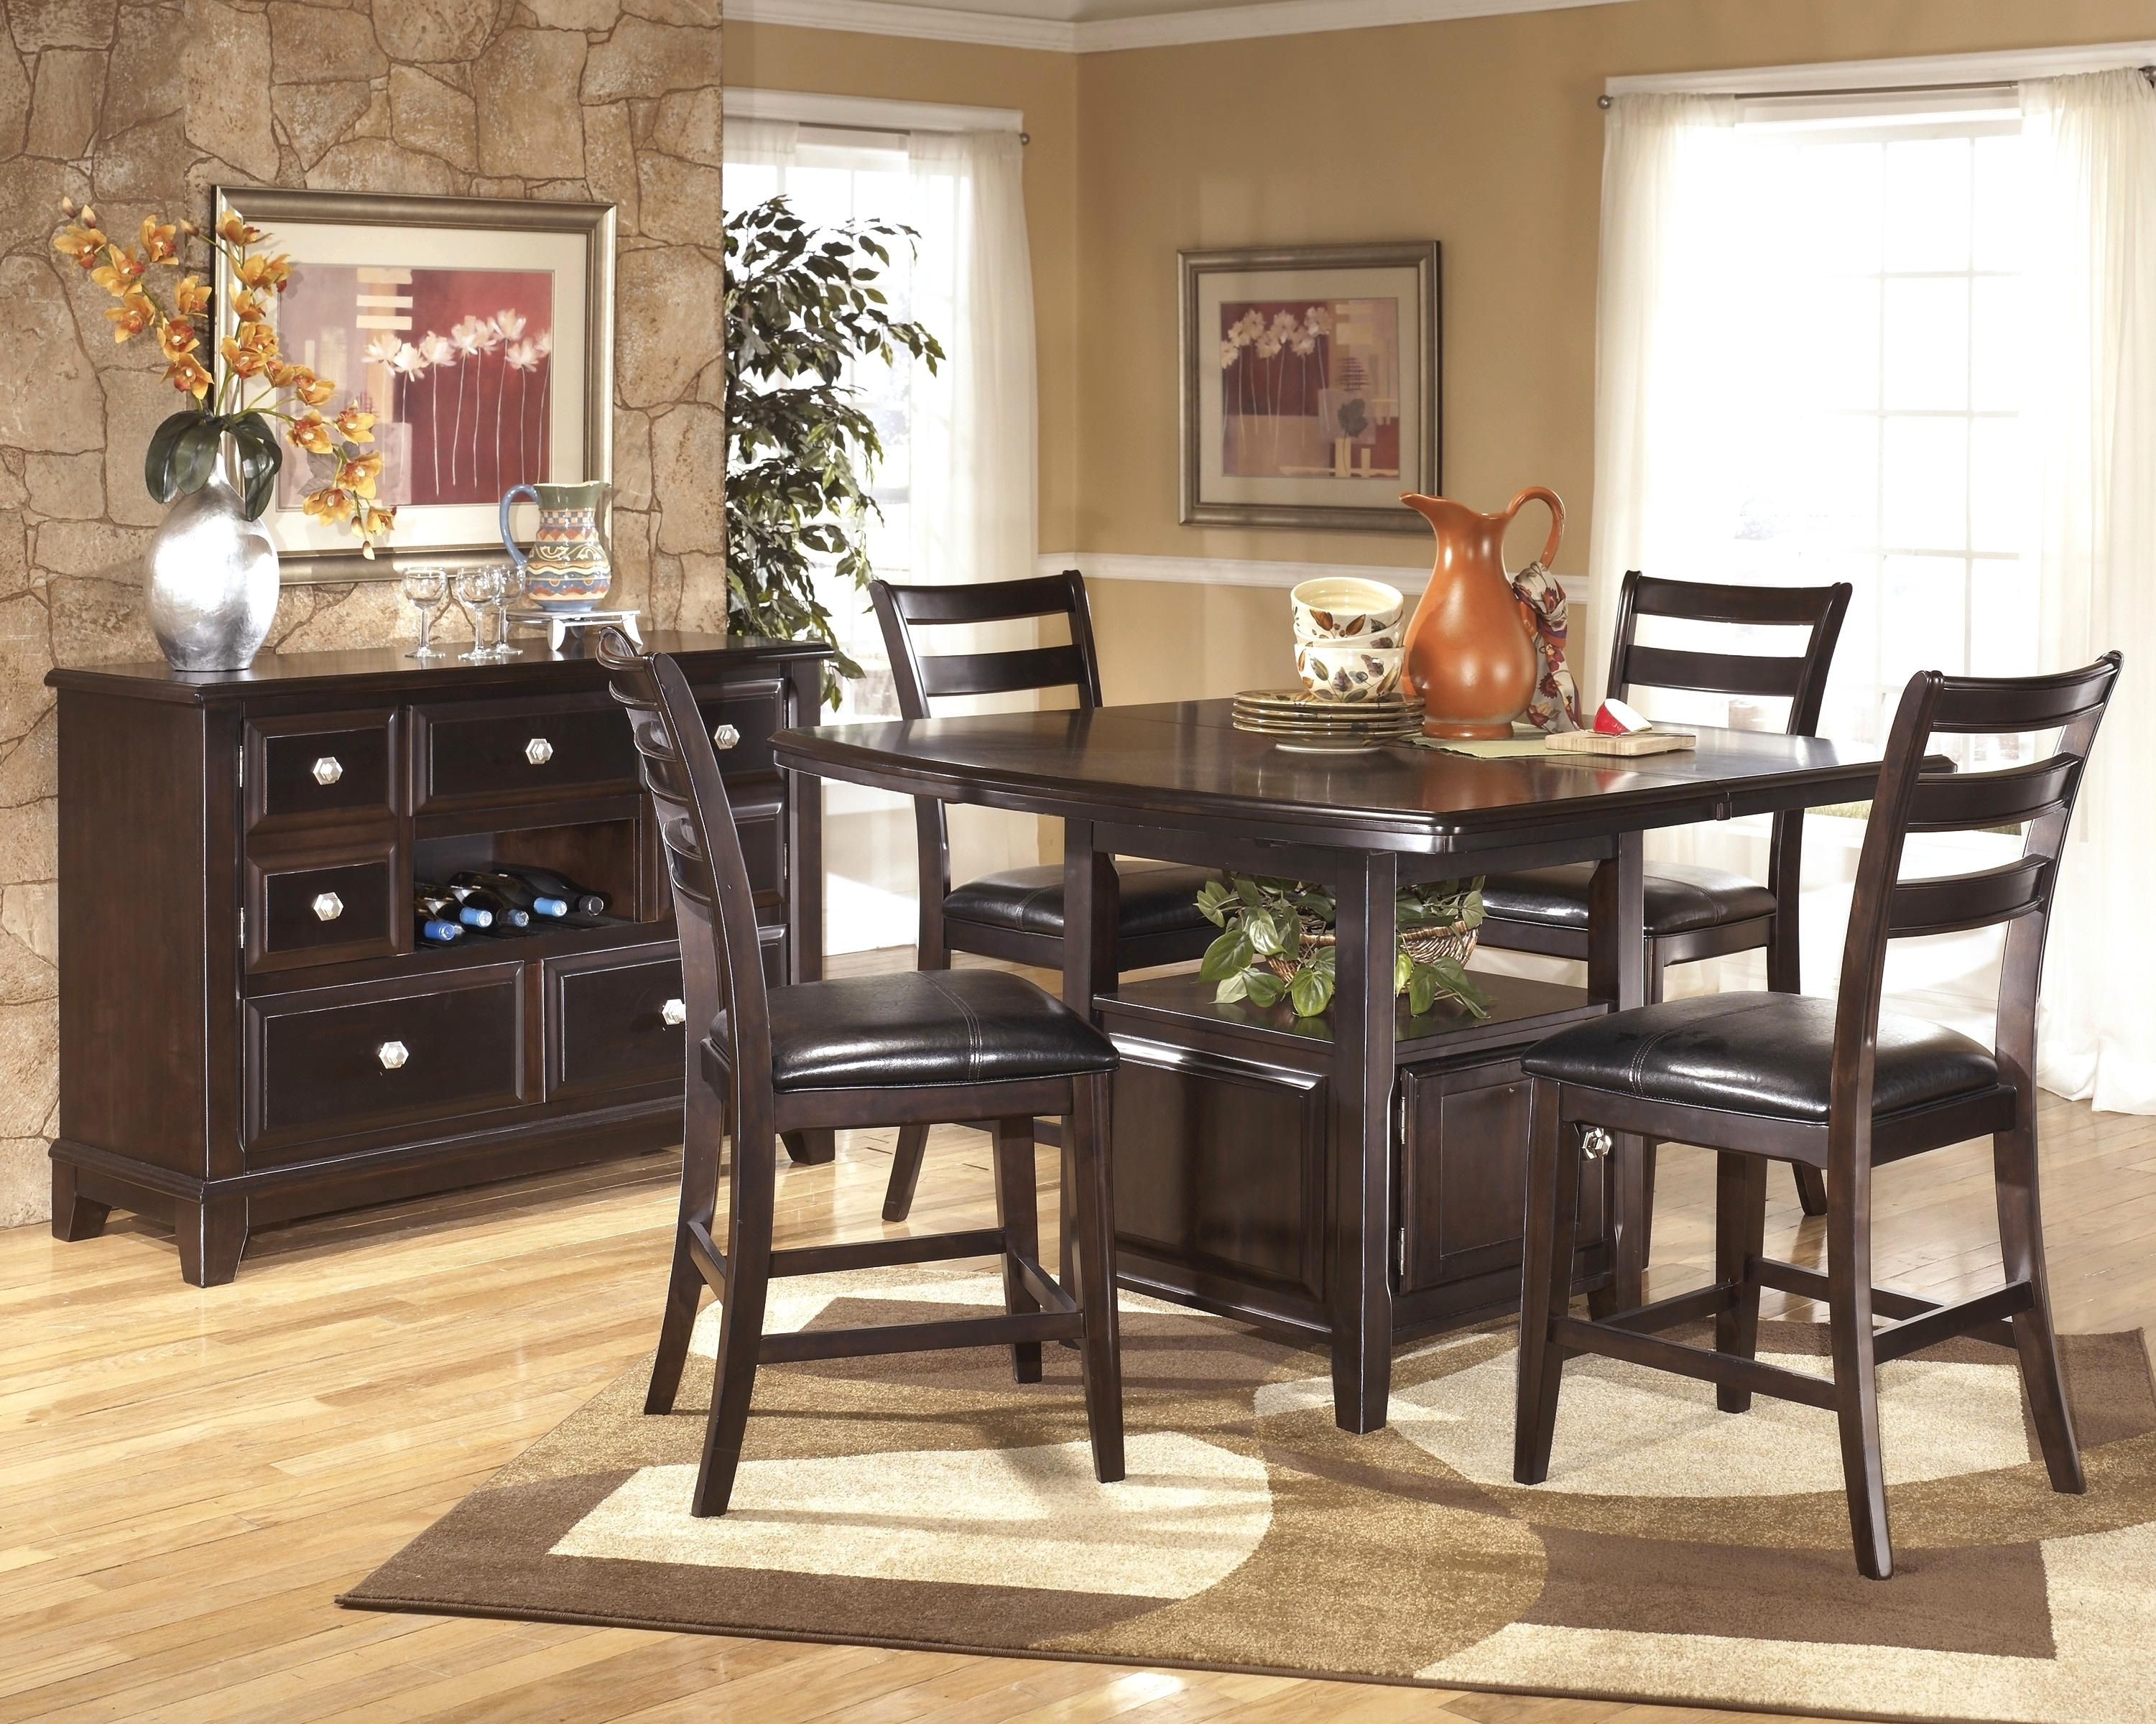 breathtaking dining room sets buffet hutch charming dining room sets